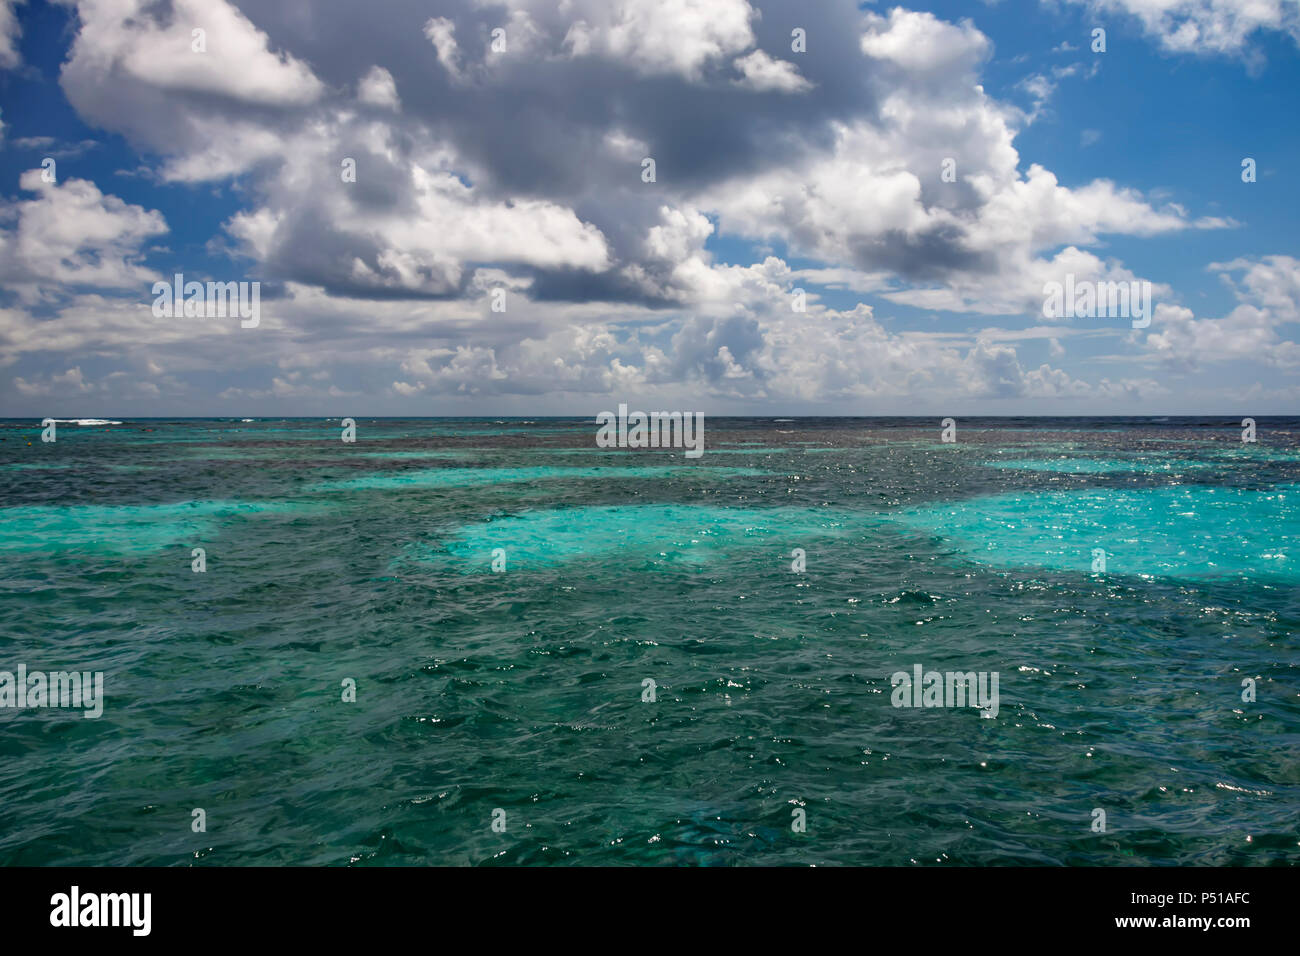 Turquoise water of the Caribbean Seay - Stock Image